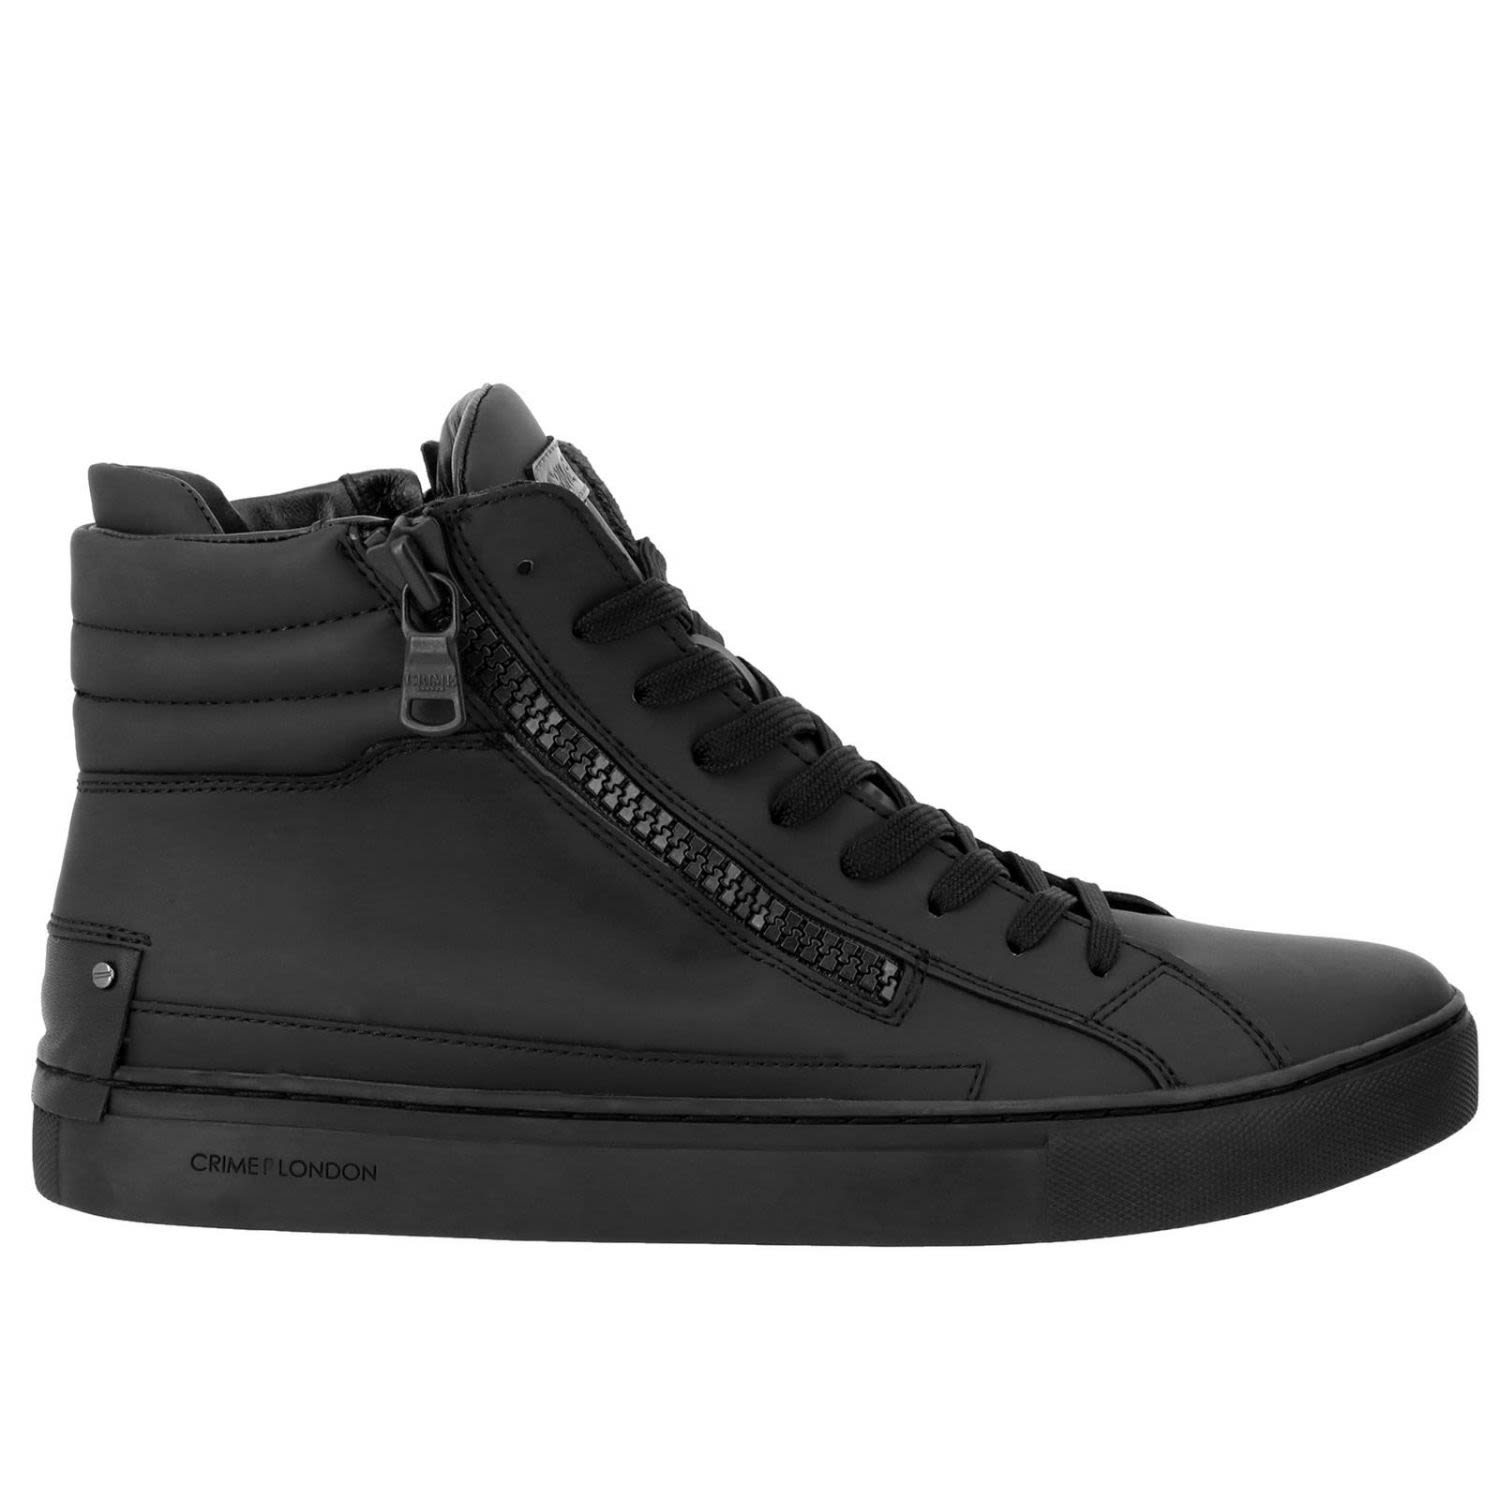 CRIME LONDON Crime London Sneakers Shoes Men Crime London in Black